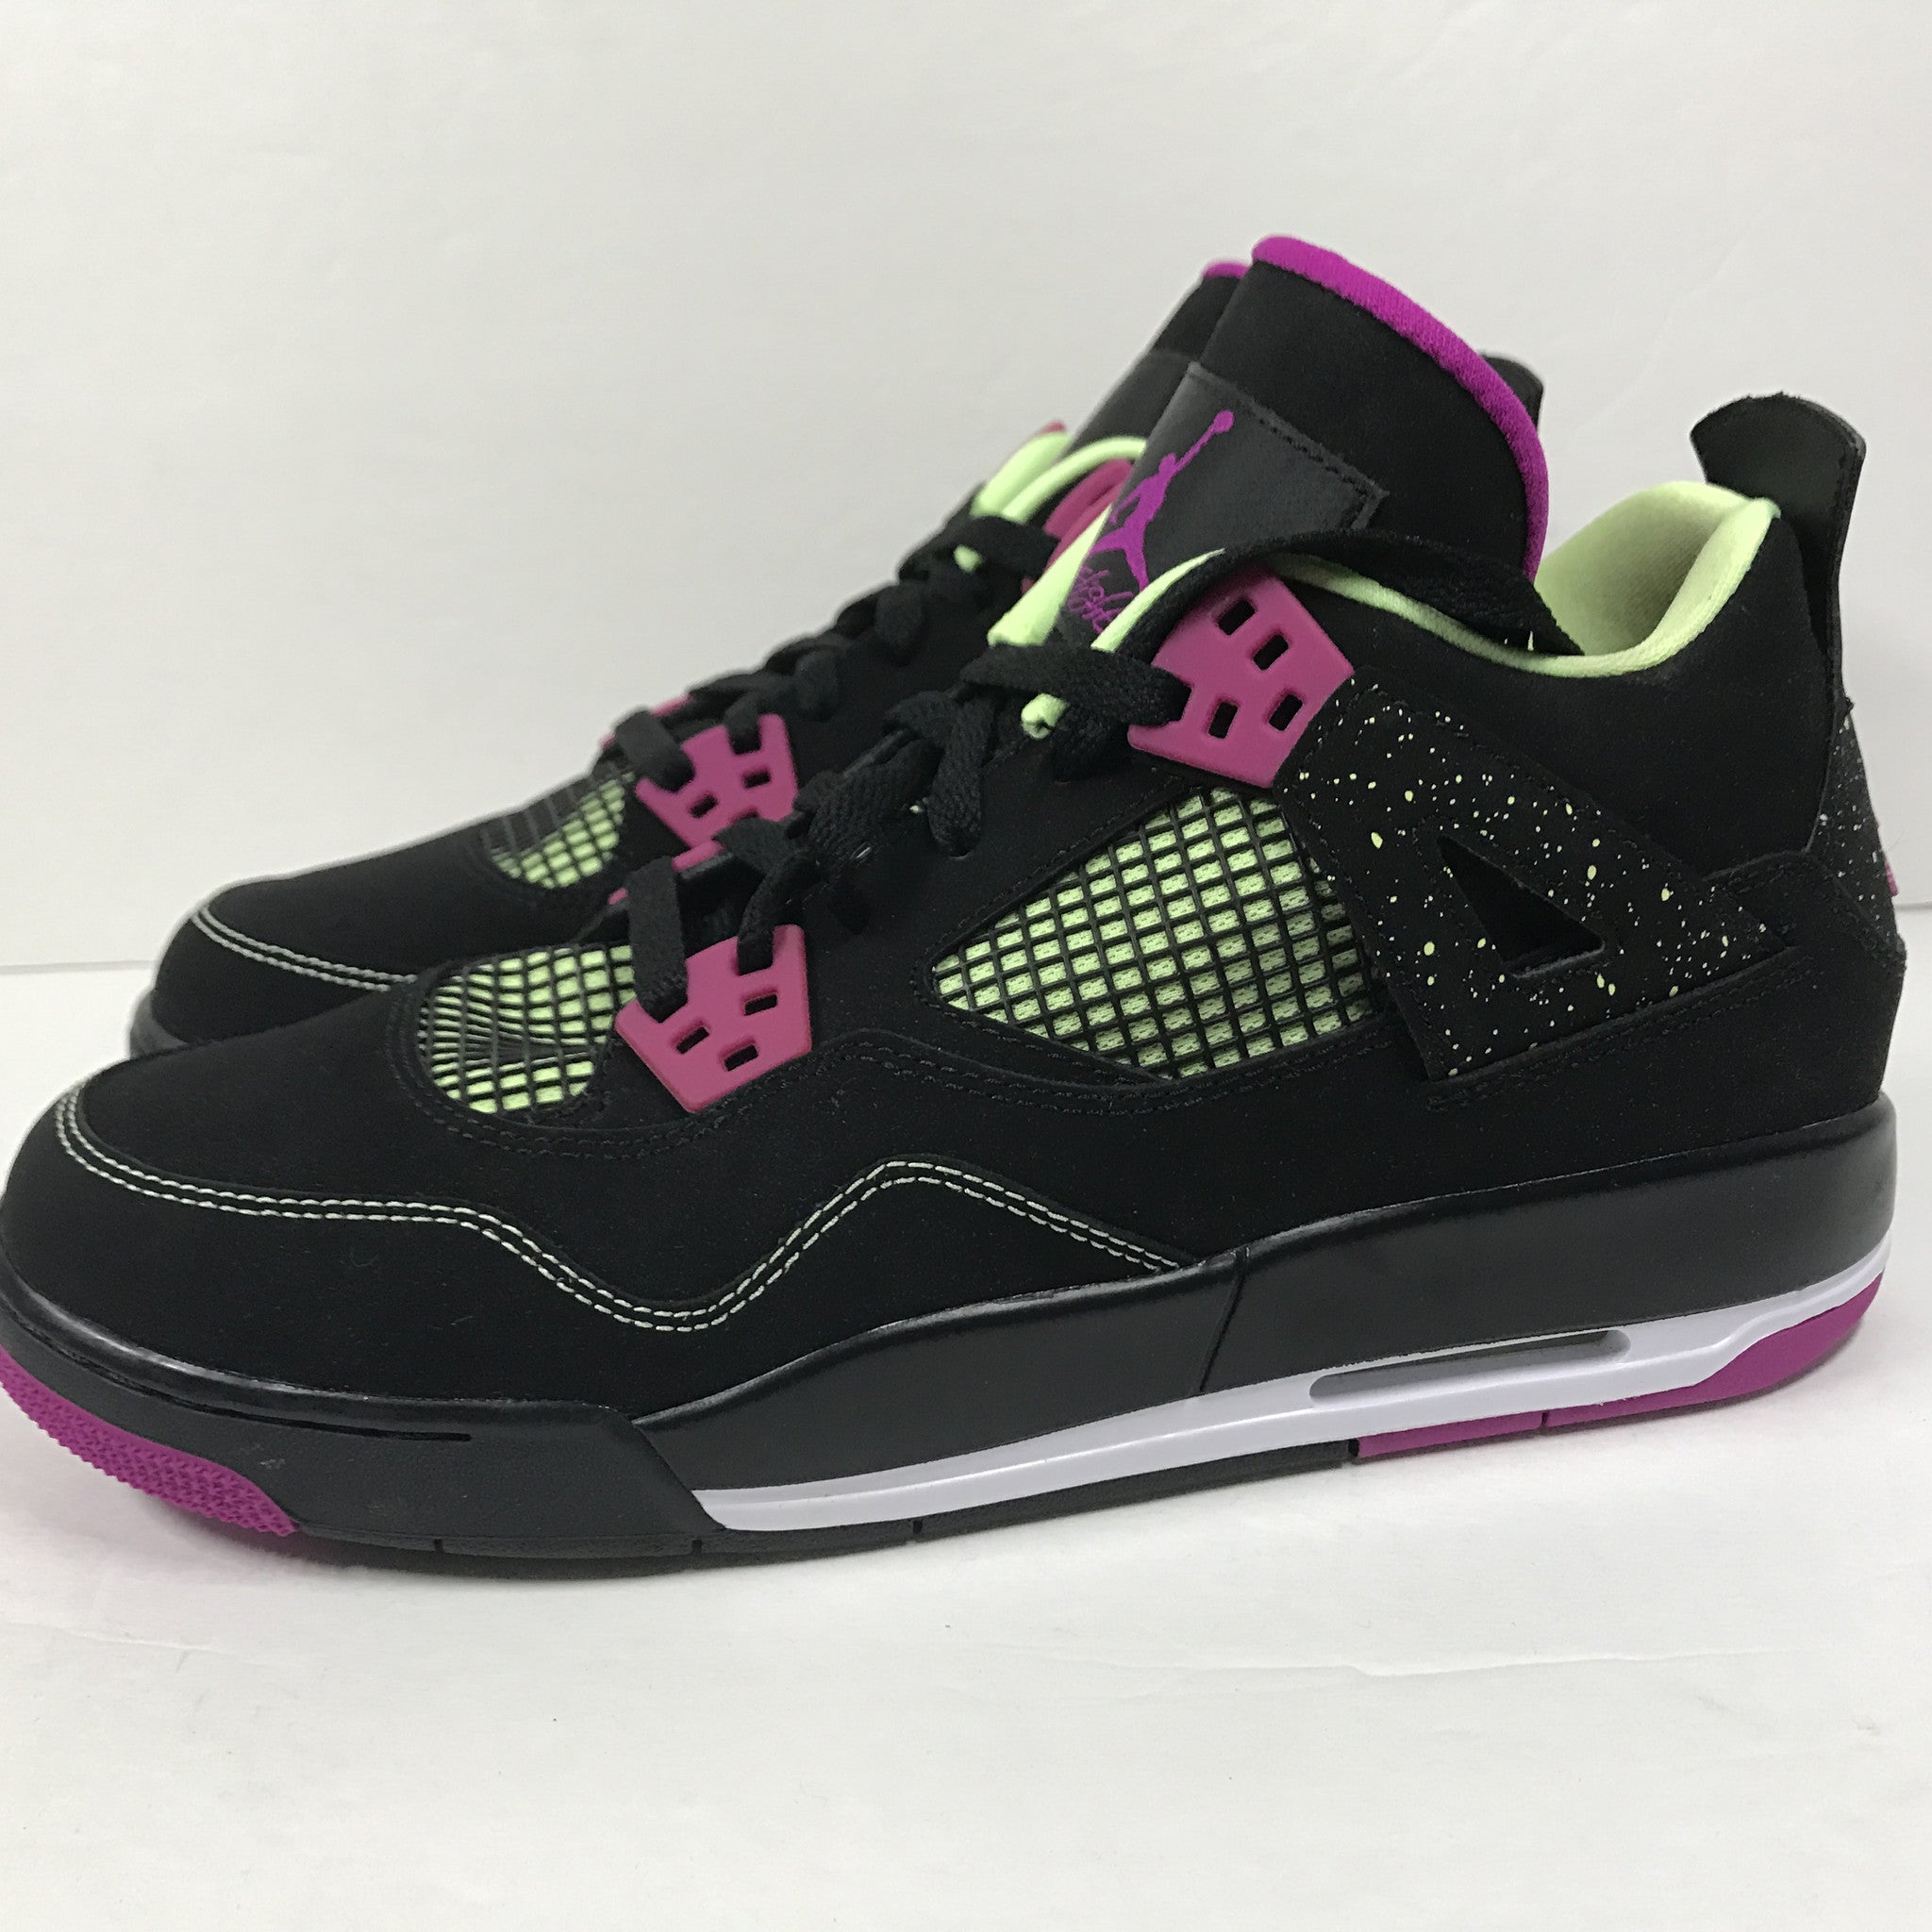 DS Nike Air Jordan 4 IV Retro 30th GG Black/Fuchscia Size 9Y - DOPEFOOT  - 5